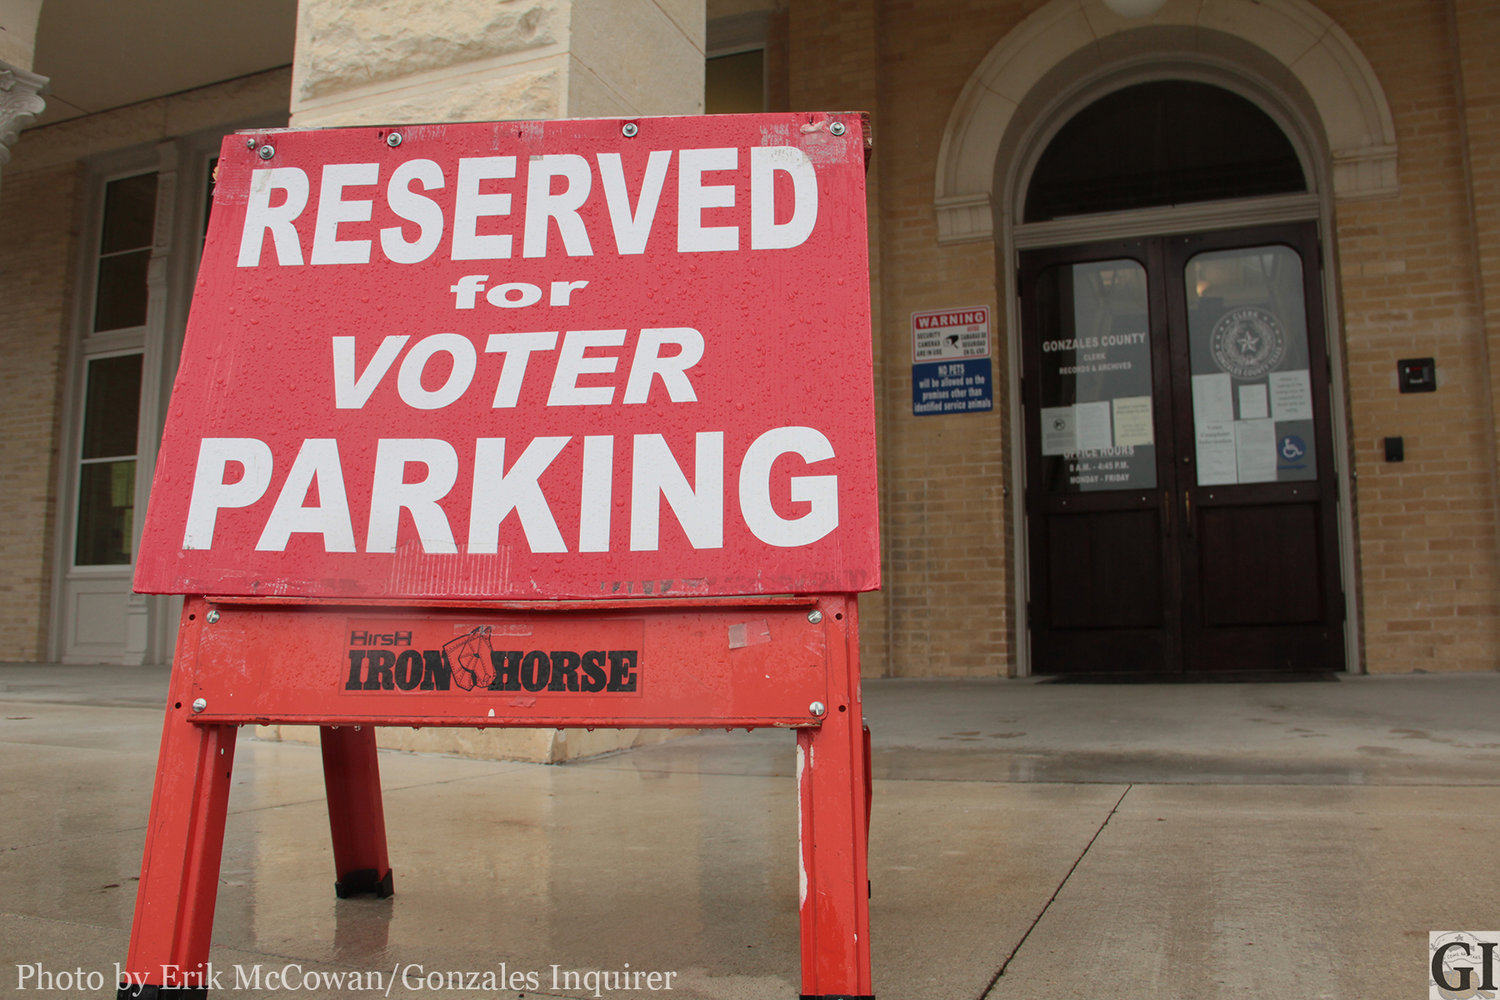 Gonzales County has rolled out the red carpet for early voting, or at least the reserved parking spaces. People met poll workers on Monday, with lines said to be inching out the door of the Randle-Rather Bldg. Wednesday was a little slower, likely because of the dreary conditions.